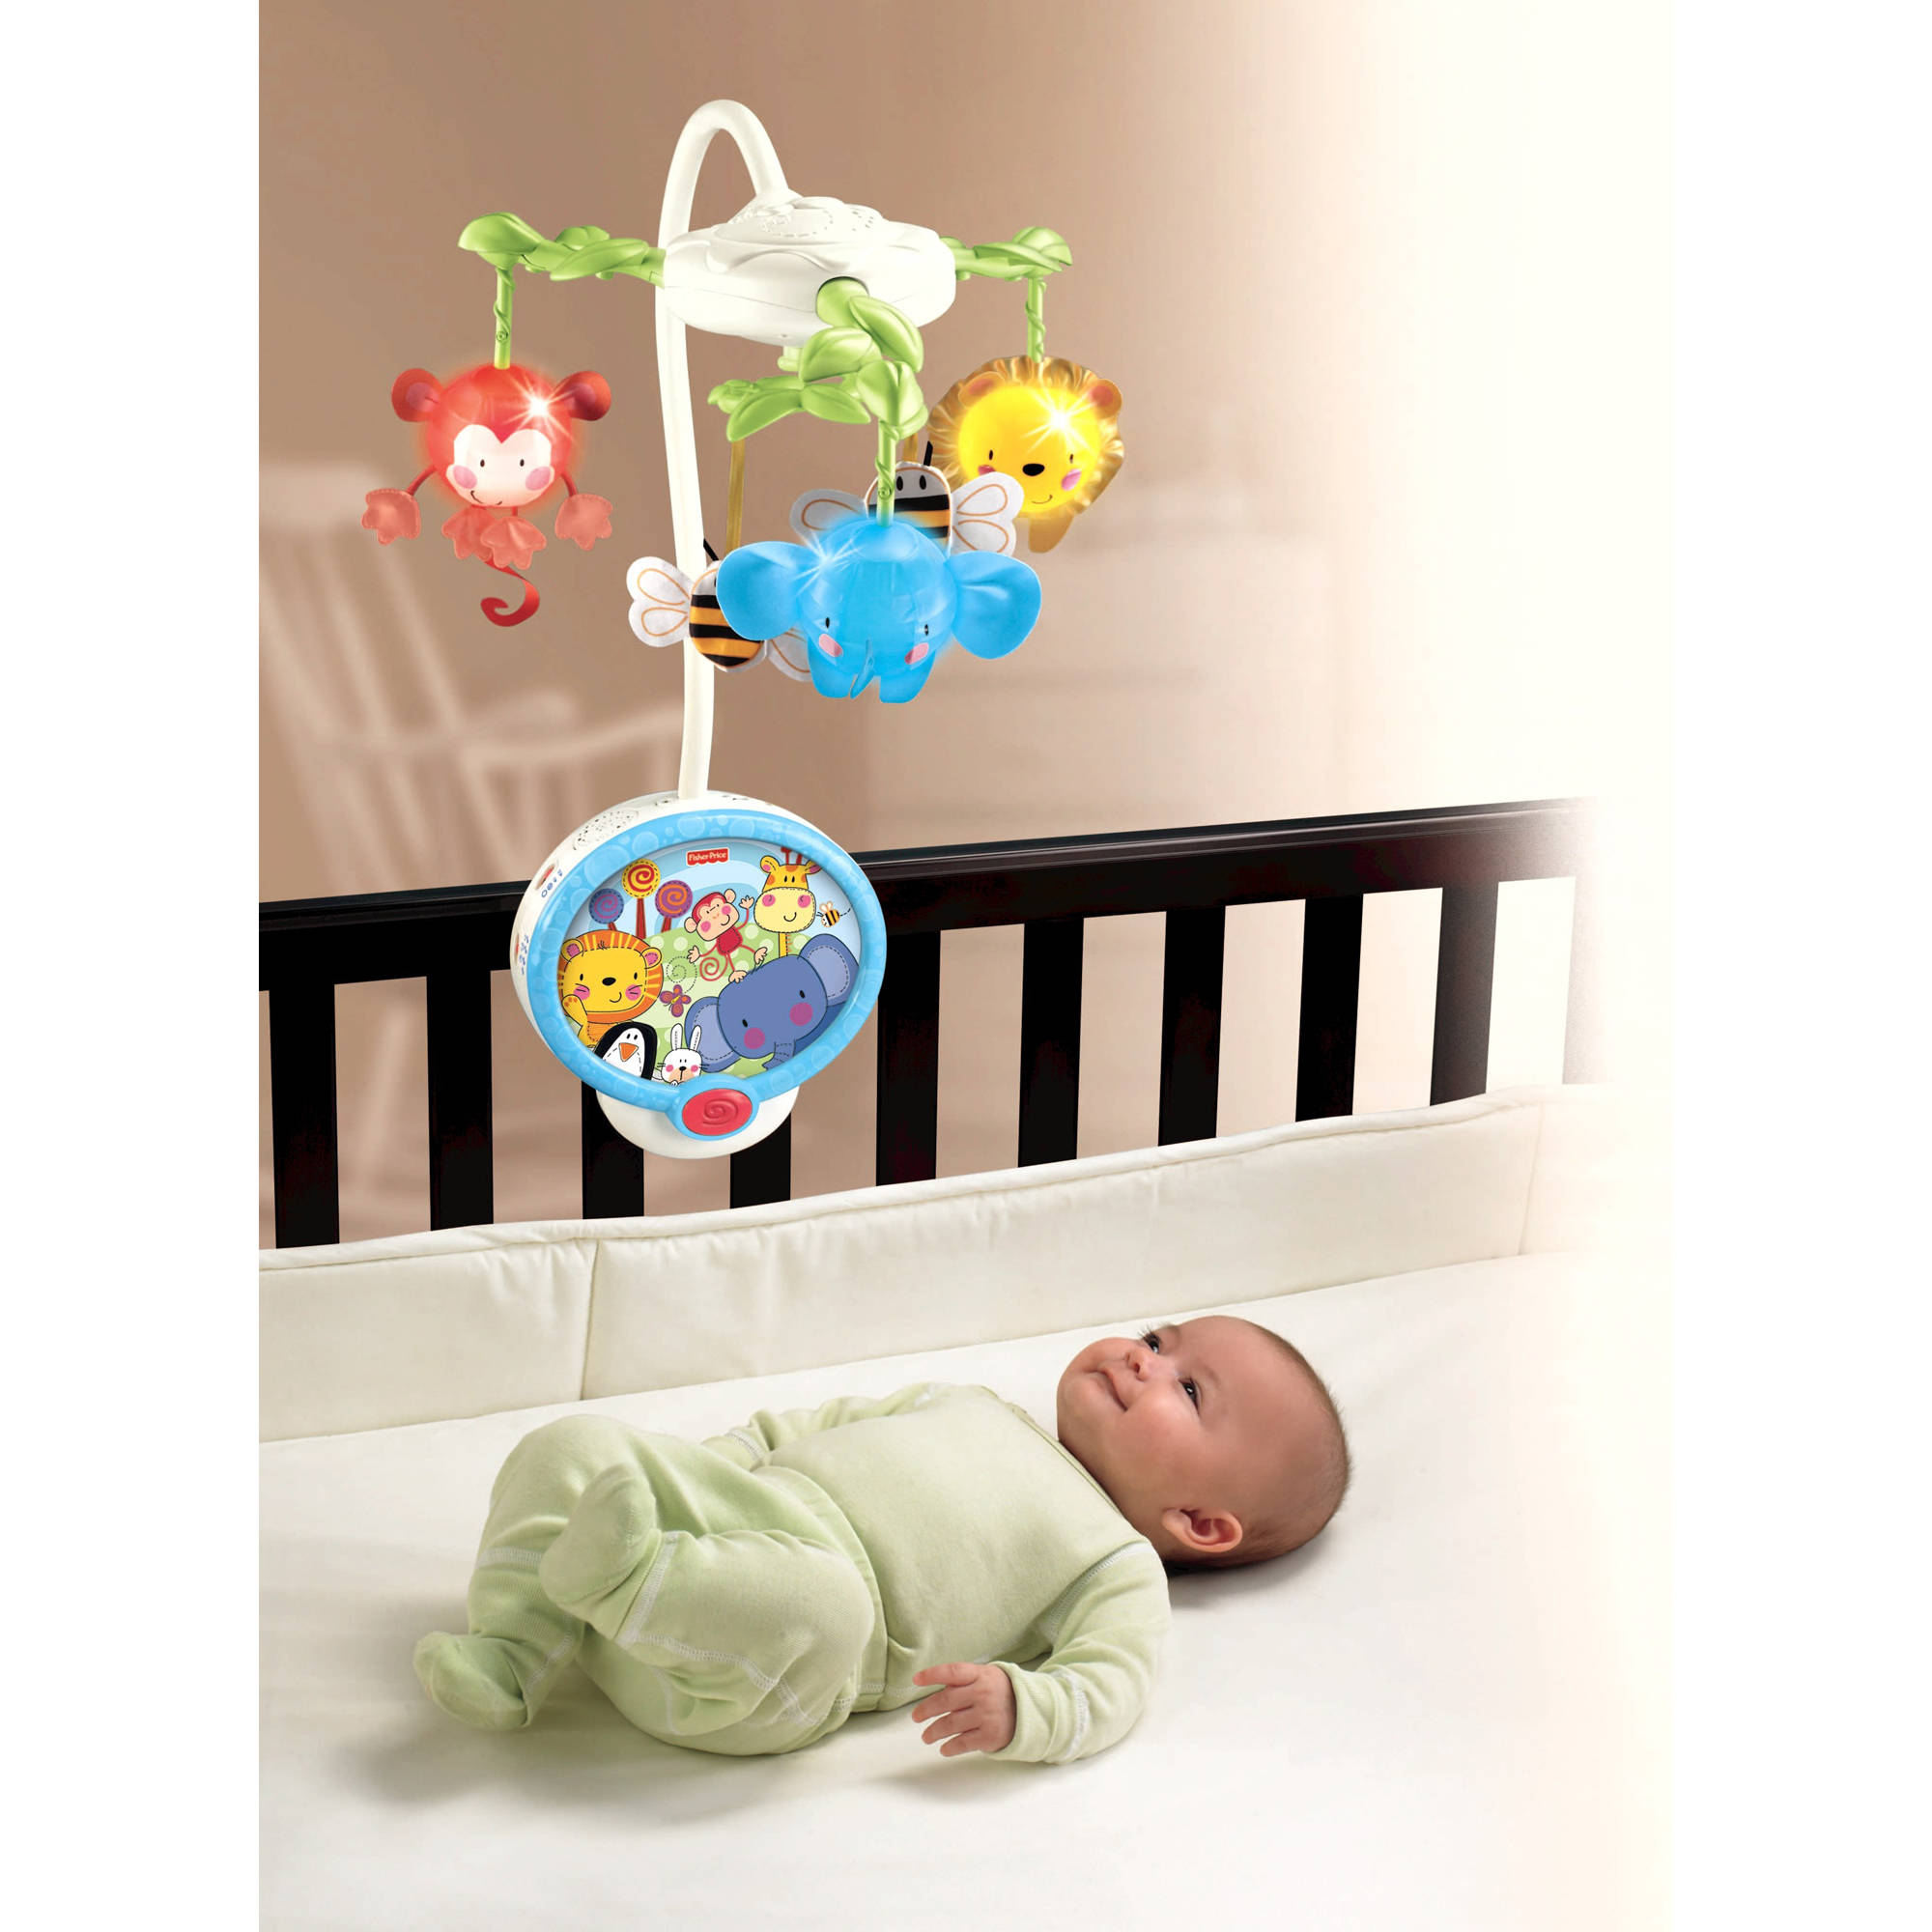 Fisher Price Discover 'N Grow Twinkling Lights Projection Mobile by Fisher-Price